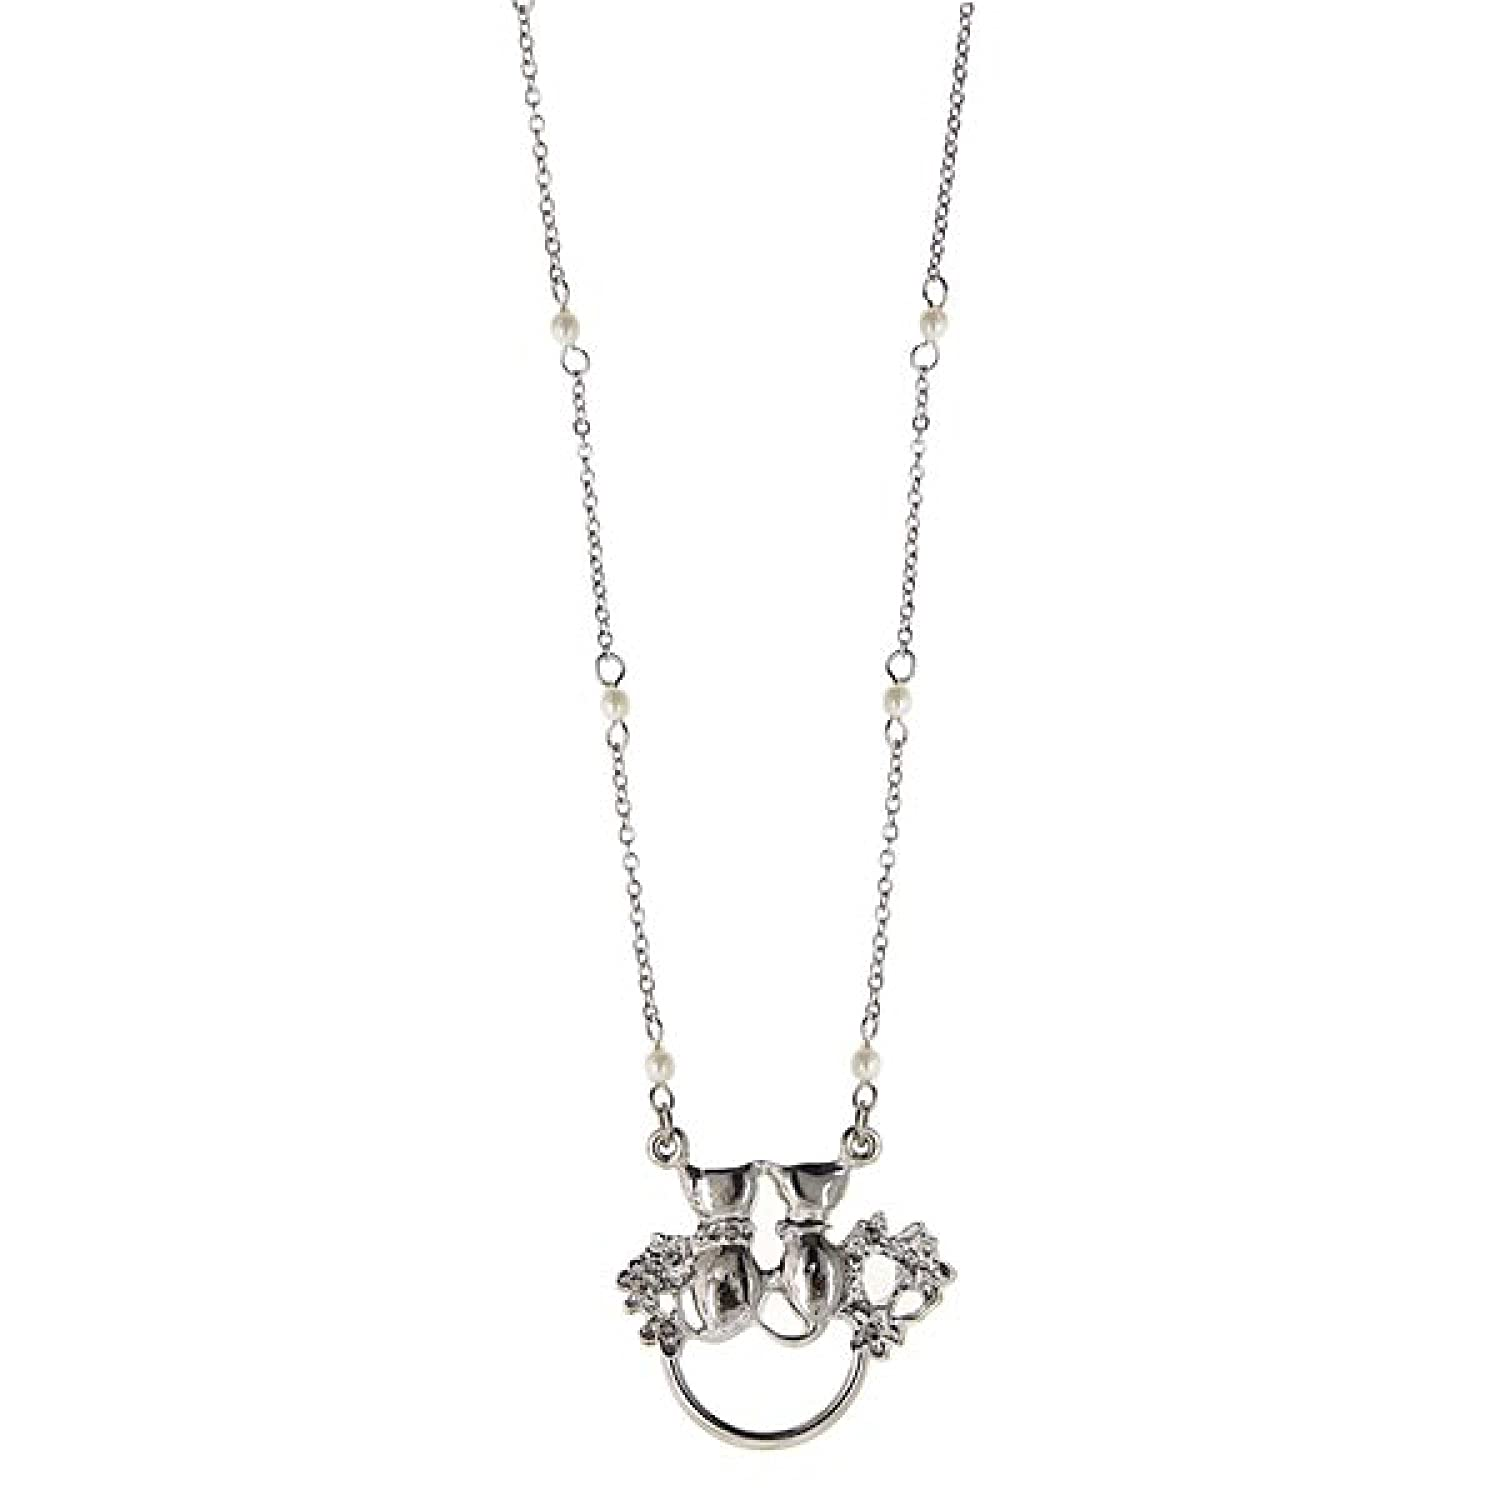 Silver-Tone Simulated Pearl Chain Double Cats Eyeglass/Badge Holder Necklace N28 1928 Jewelry Company 51516